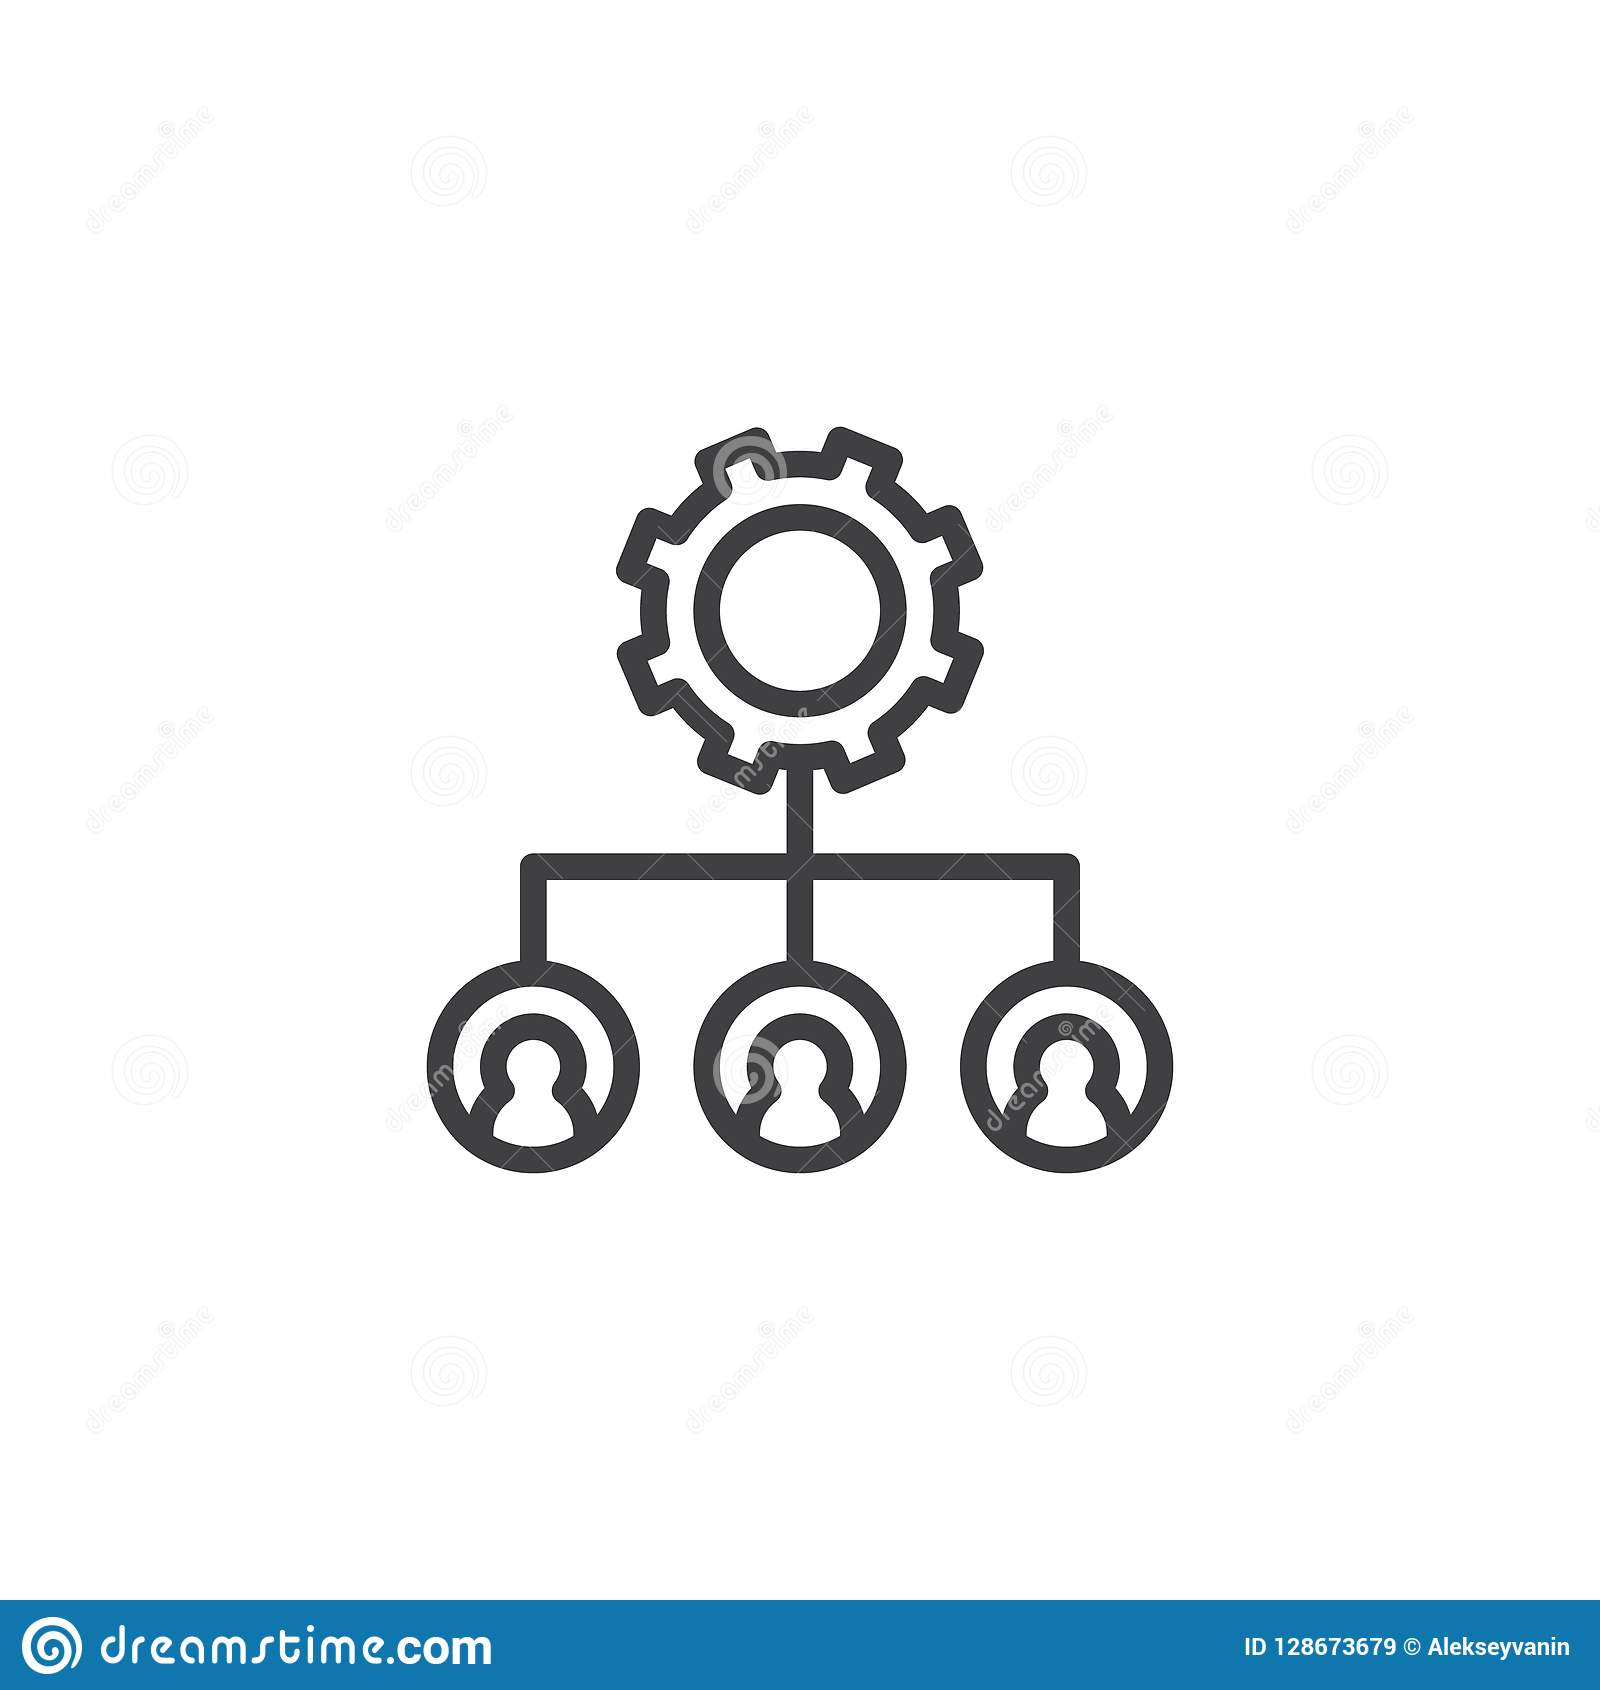 Hierarchical structure gear outline icon